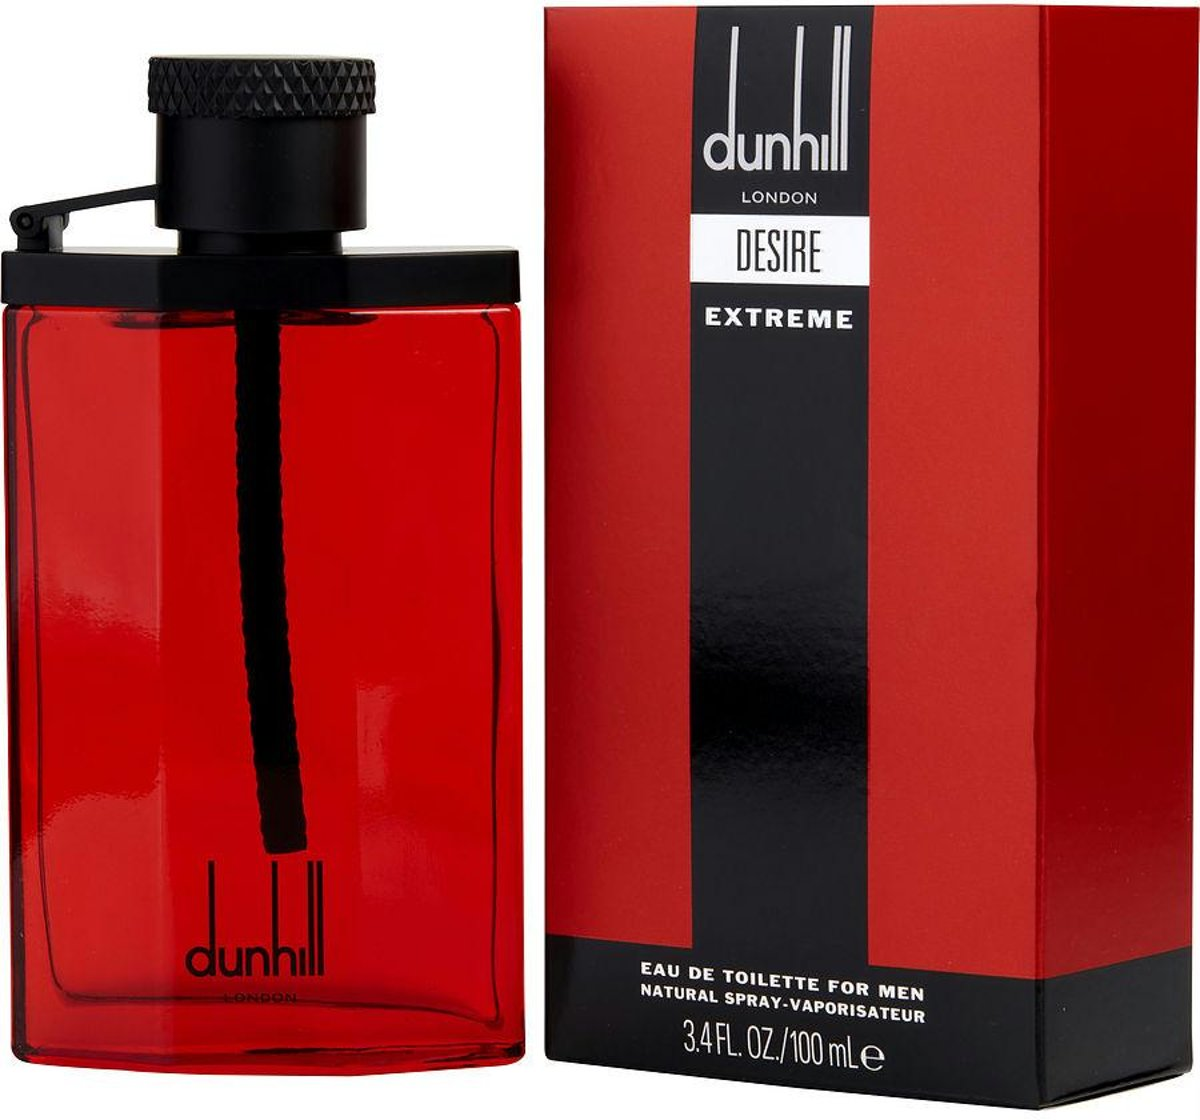 Alfred Dunhill Desire Red Extreme 100 ml - Eau De Toilette Spray Men